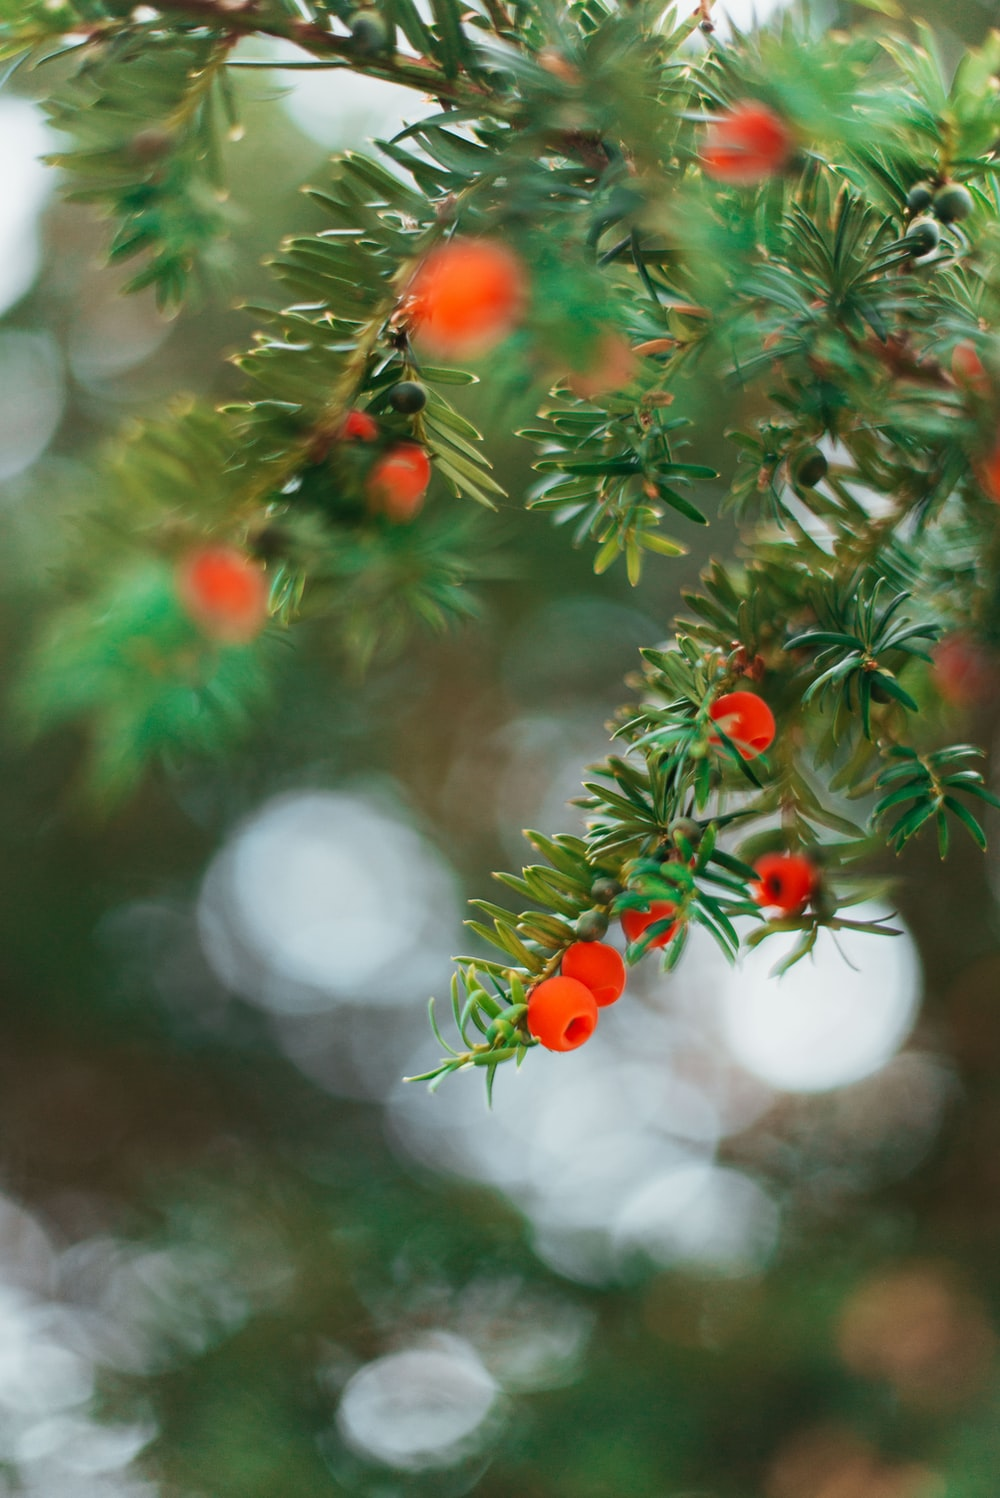 red and white round fruits on green tree